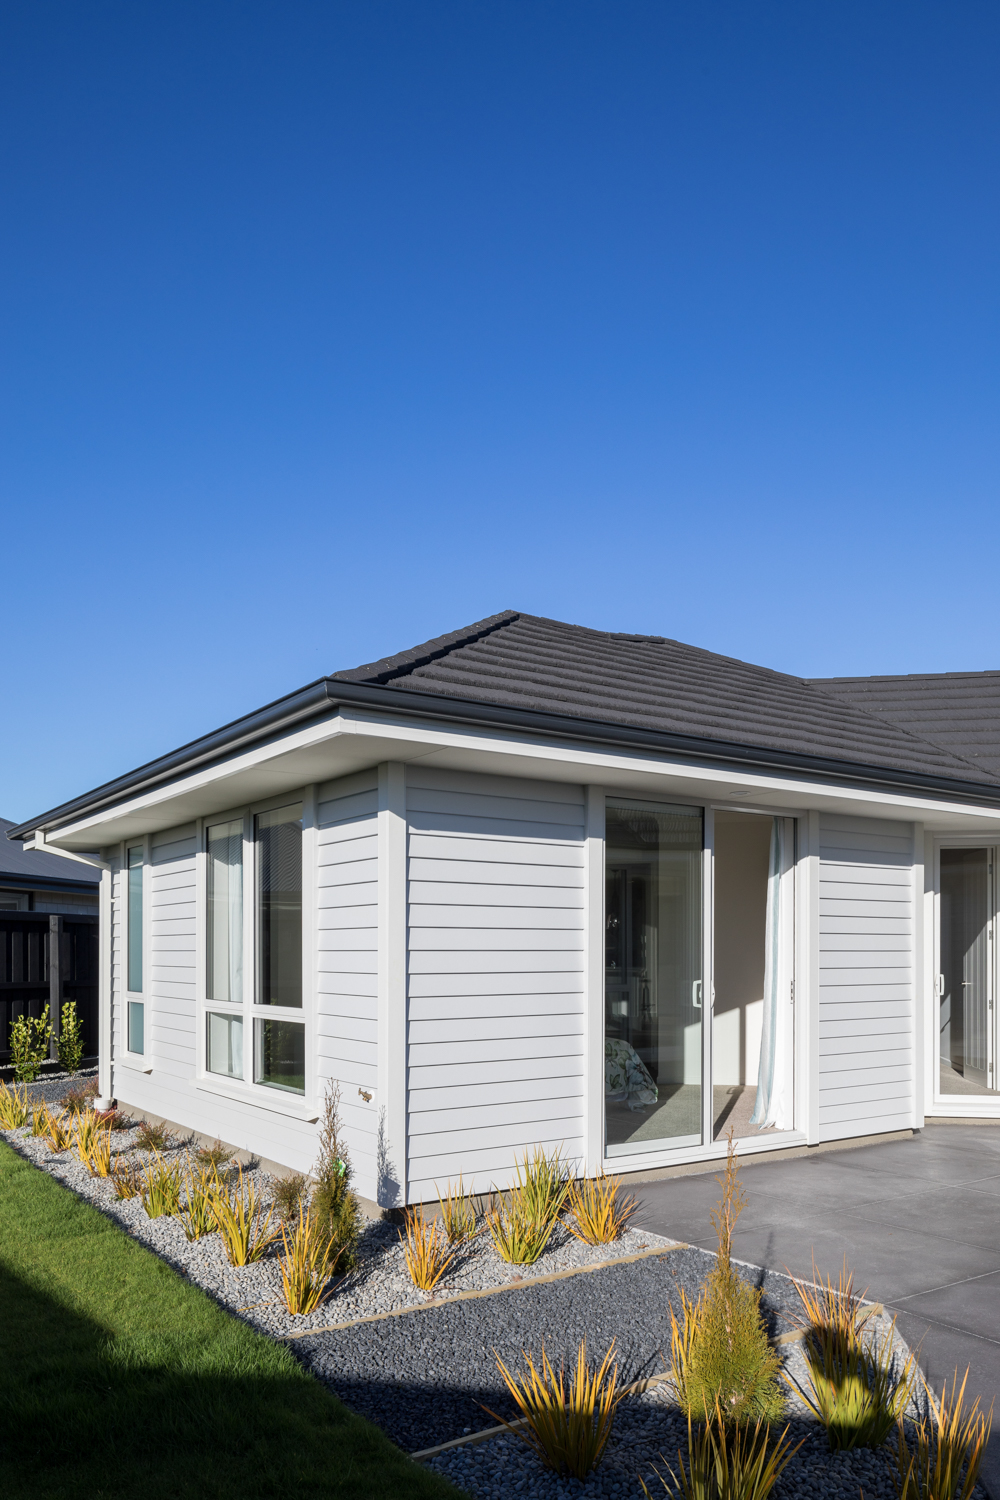 TH_Rolleston_Showhomes_029.jpg